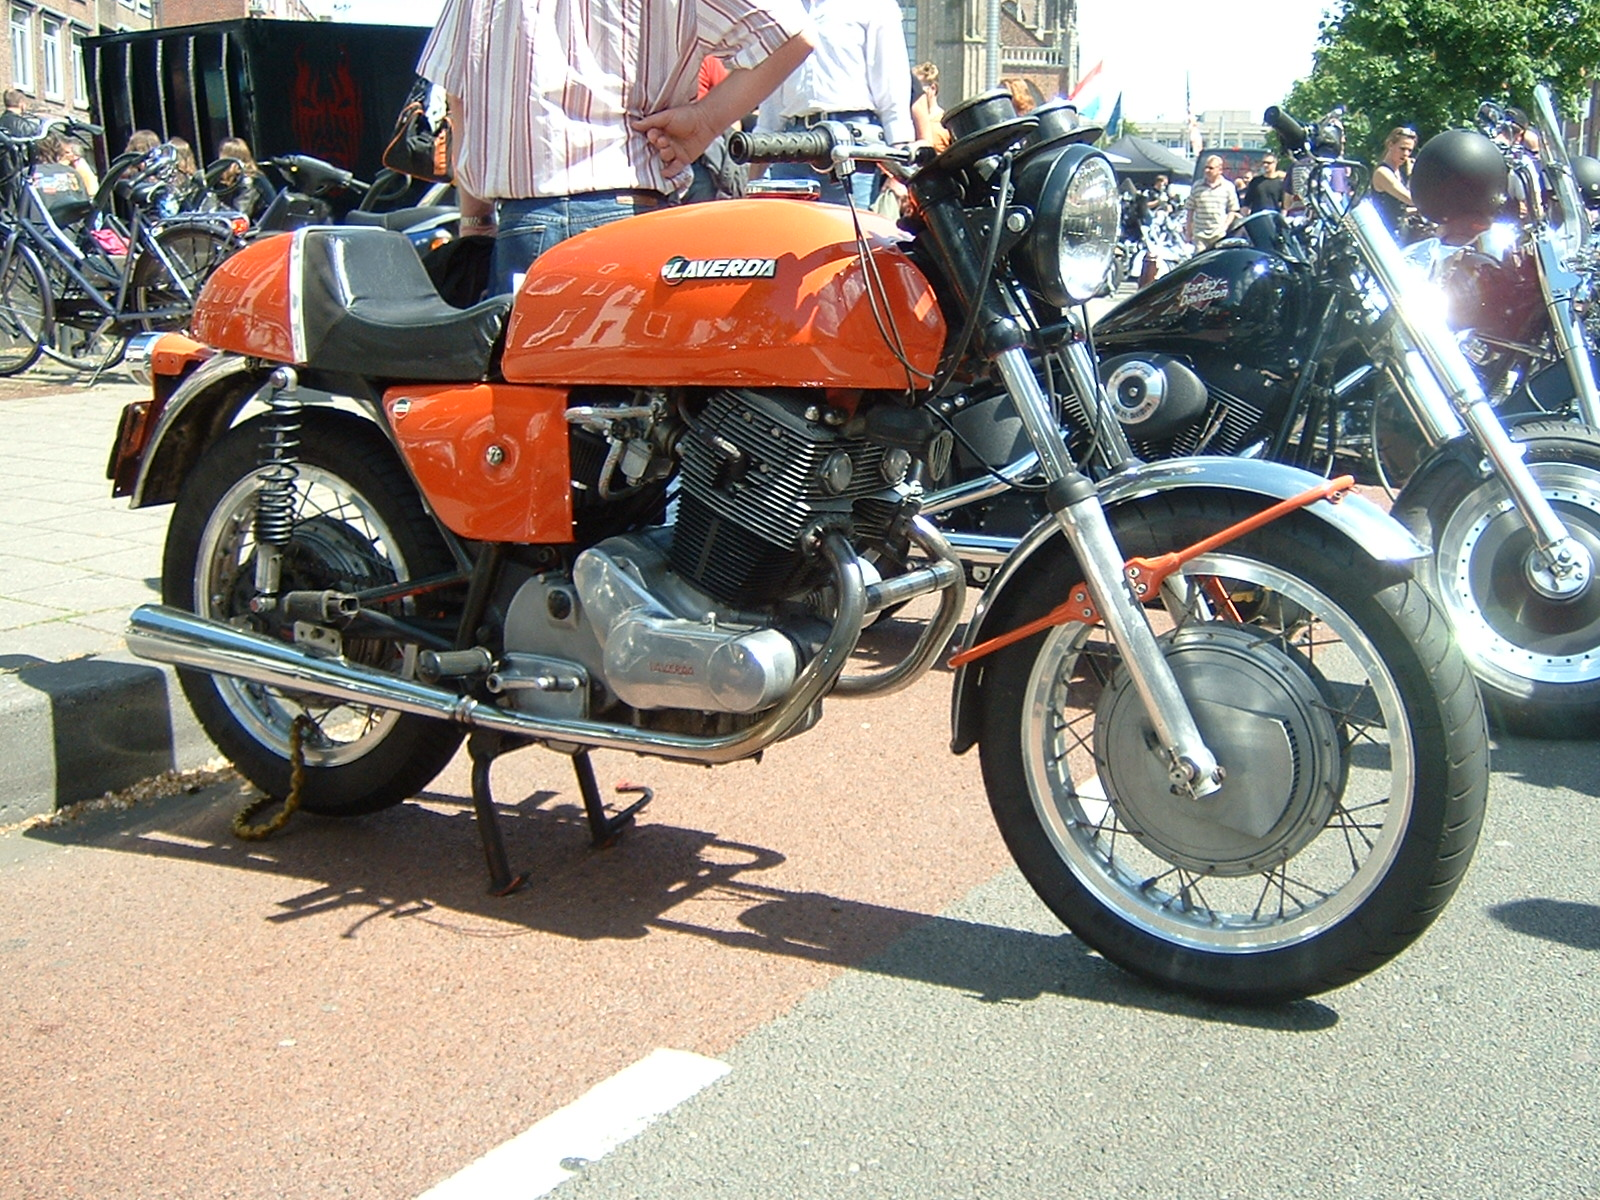 Laverda 650 Ghost Strike images #101802